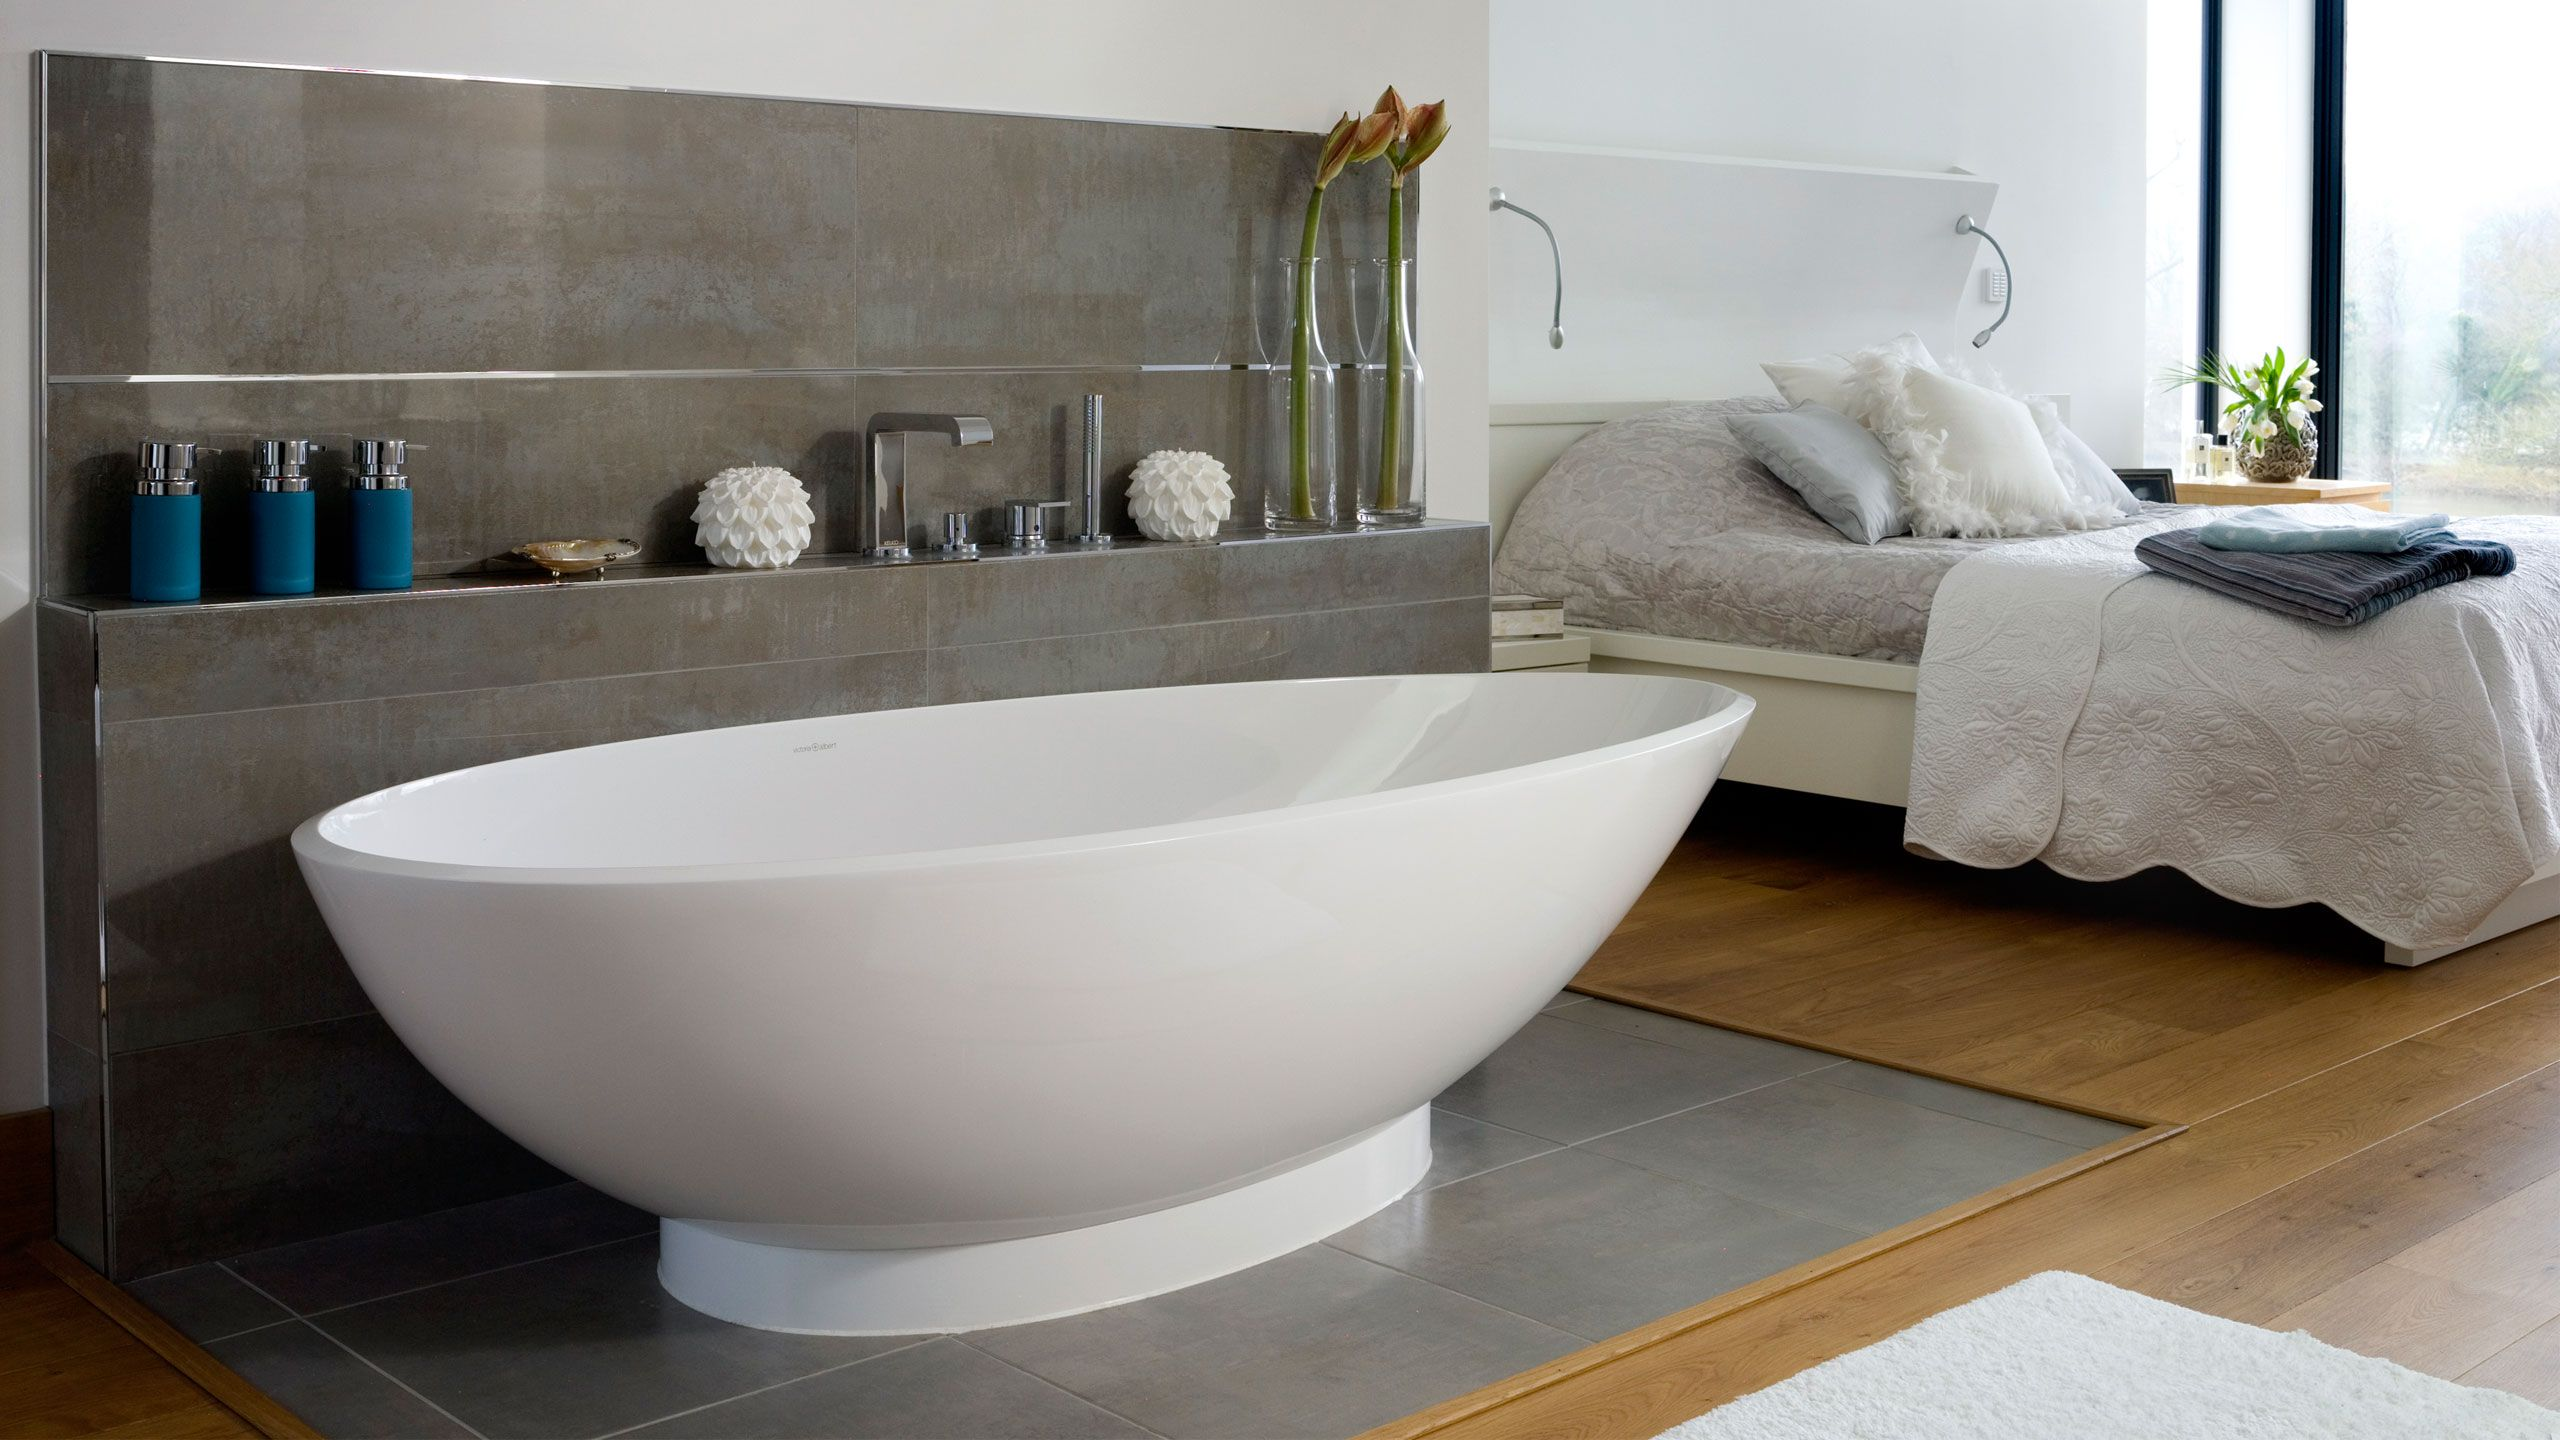 kohler cast iron freestanding tub. would be nice to have ledge near tub for setting soap etc during bath  Napoli Bath by Victoria Albert Baths Sdb Pinterest